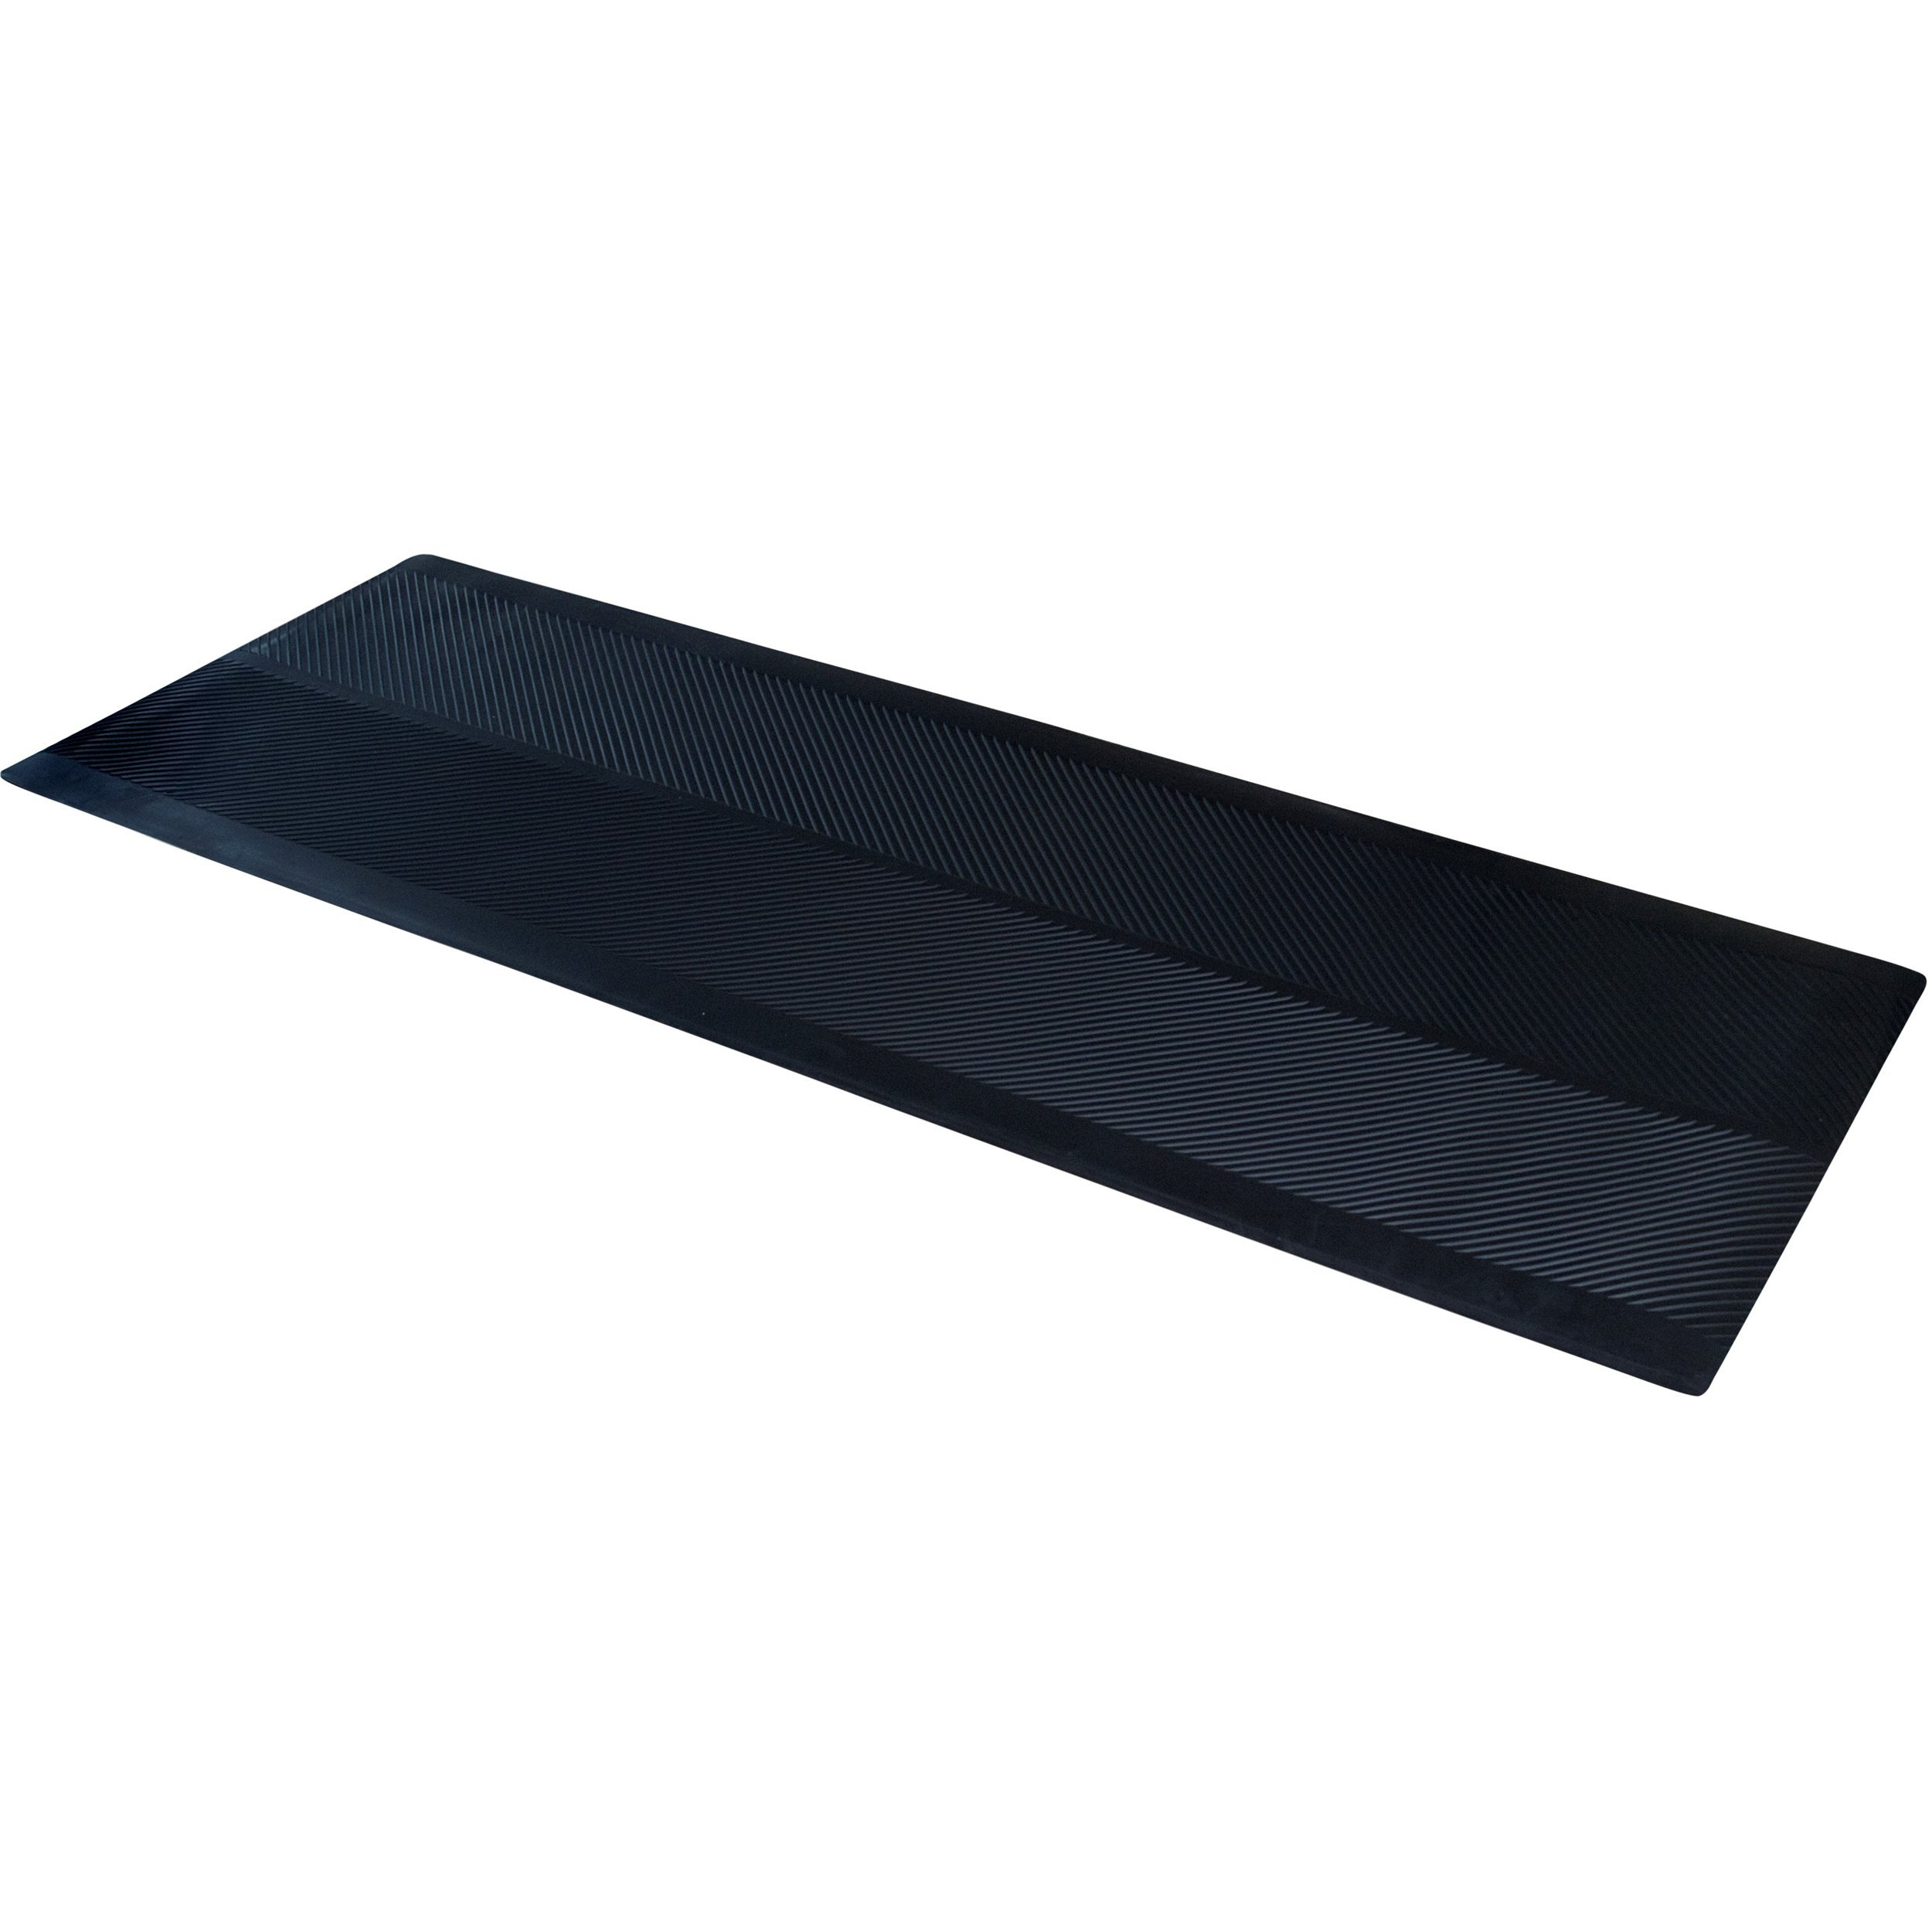 ClimaTex Dimex Indoor/Outdoor Rubber Runner Mat, 27'' X 10', Black (9A-110-27C-10)